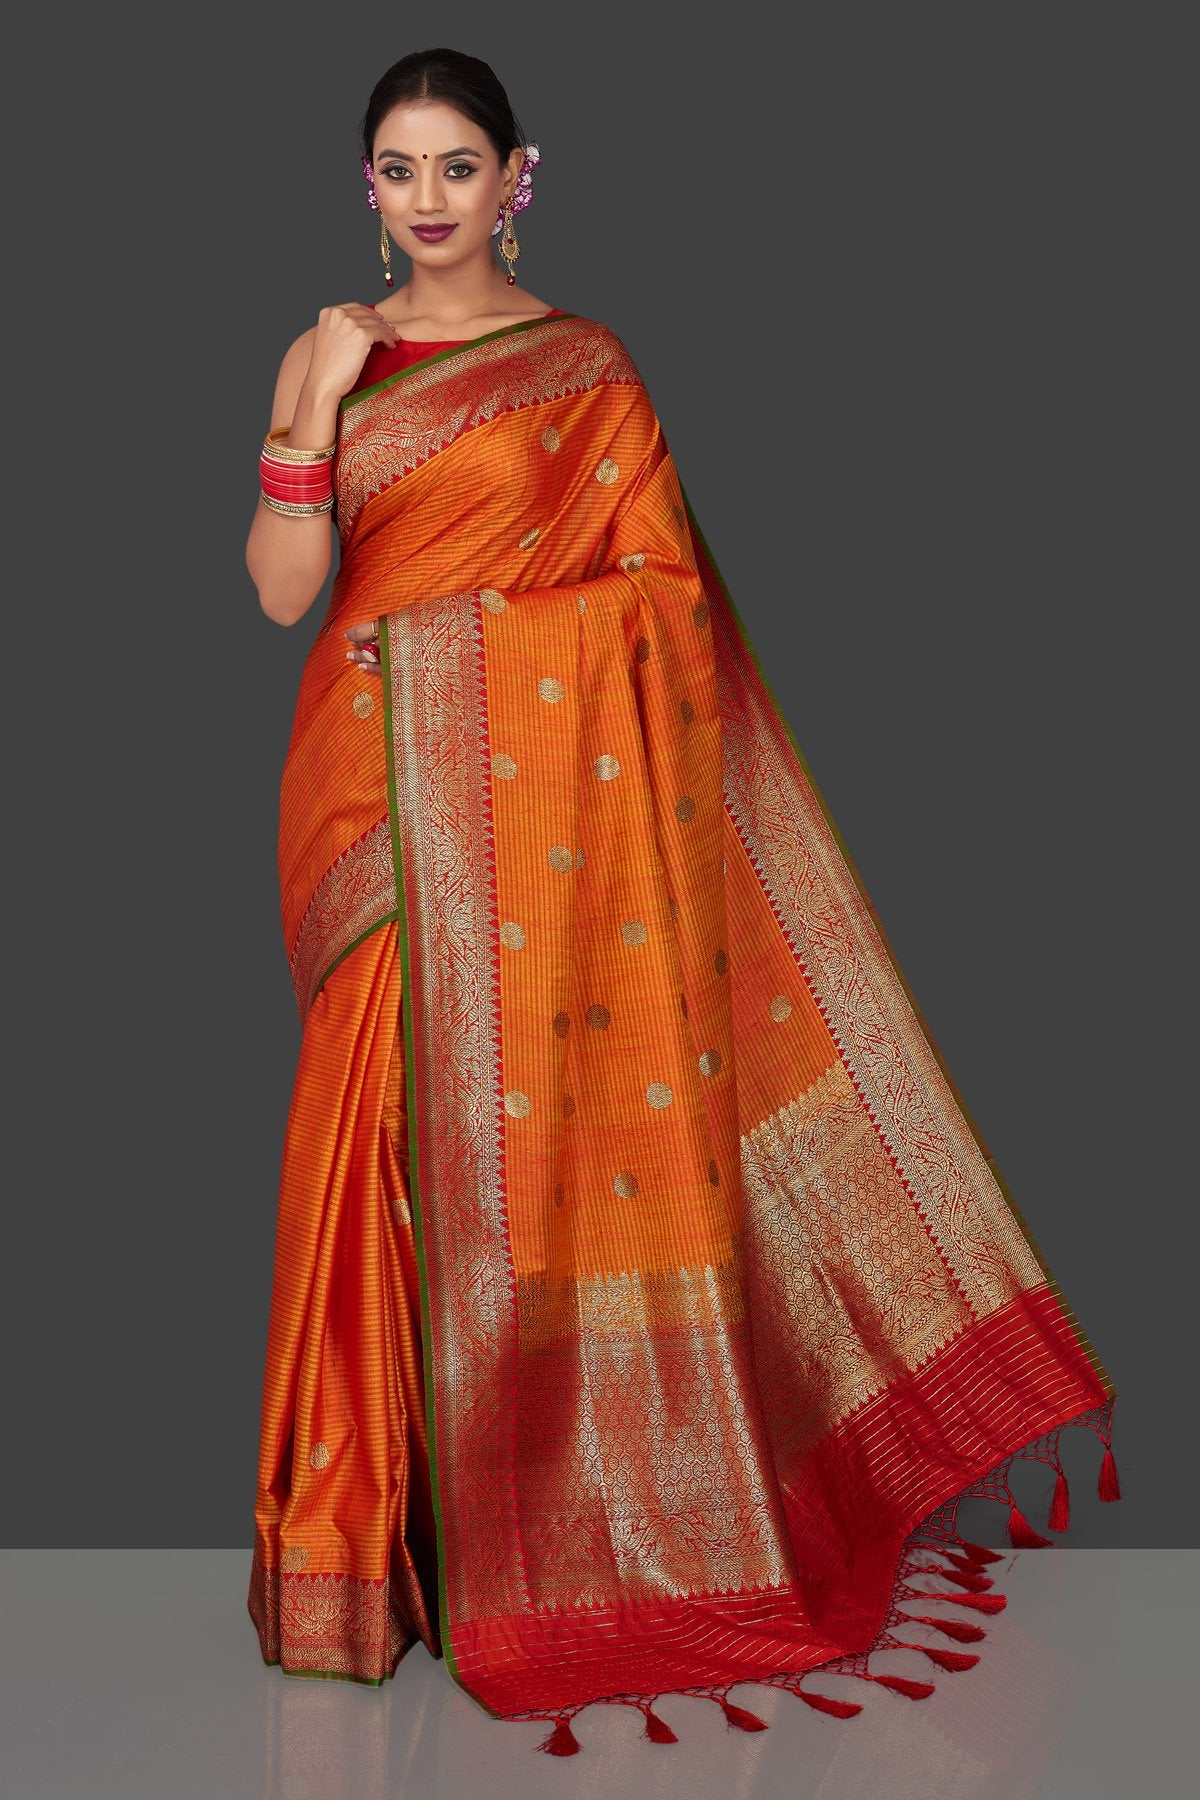 Shop beautiful orange tassar Banarasi saree online in USA with antique zari red border and zari buta. Garner compliments on weddings and special occasions with exquisite Banarasi saris, handwoven silk sarees, tussar sarees from Pure Elegance Indian fashion store in USA.-full view